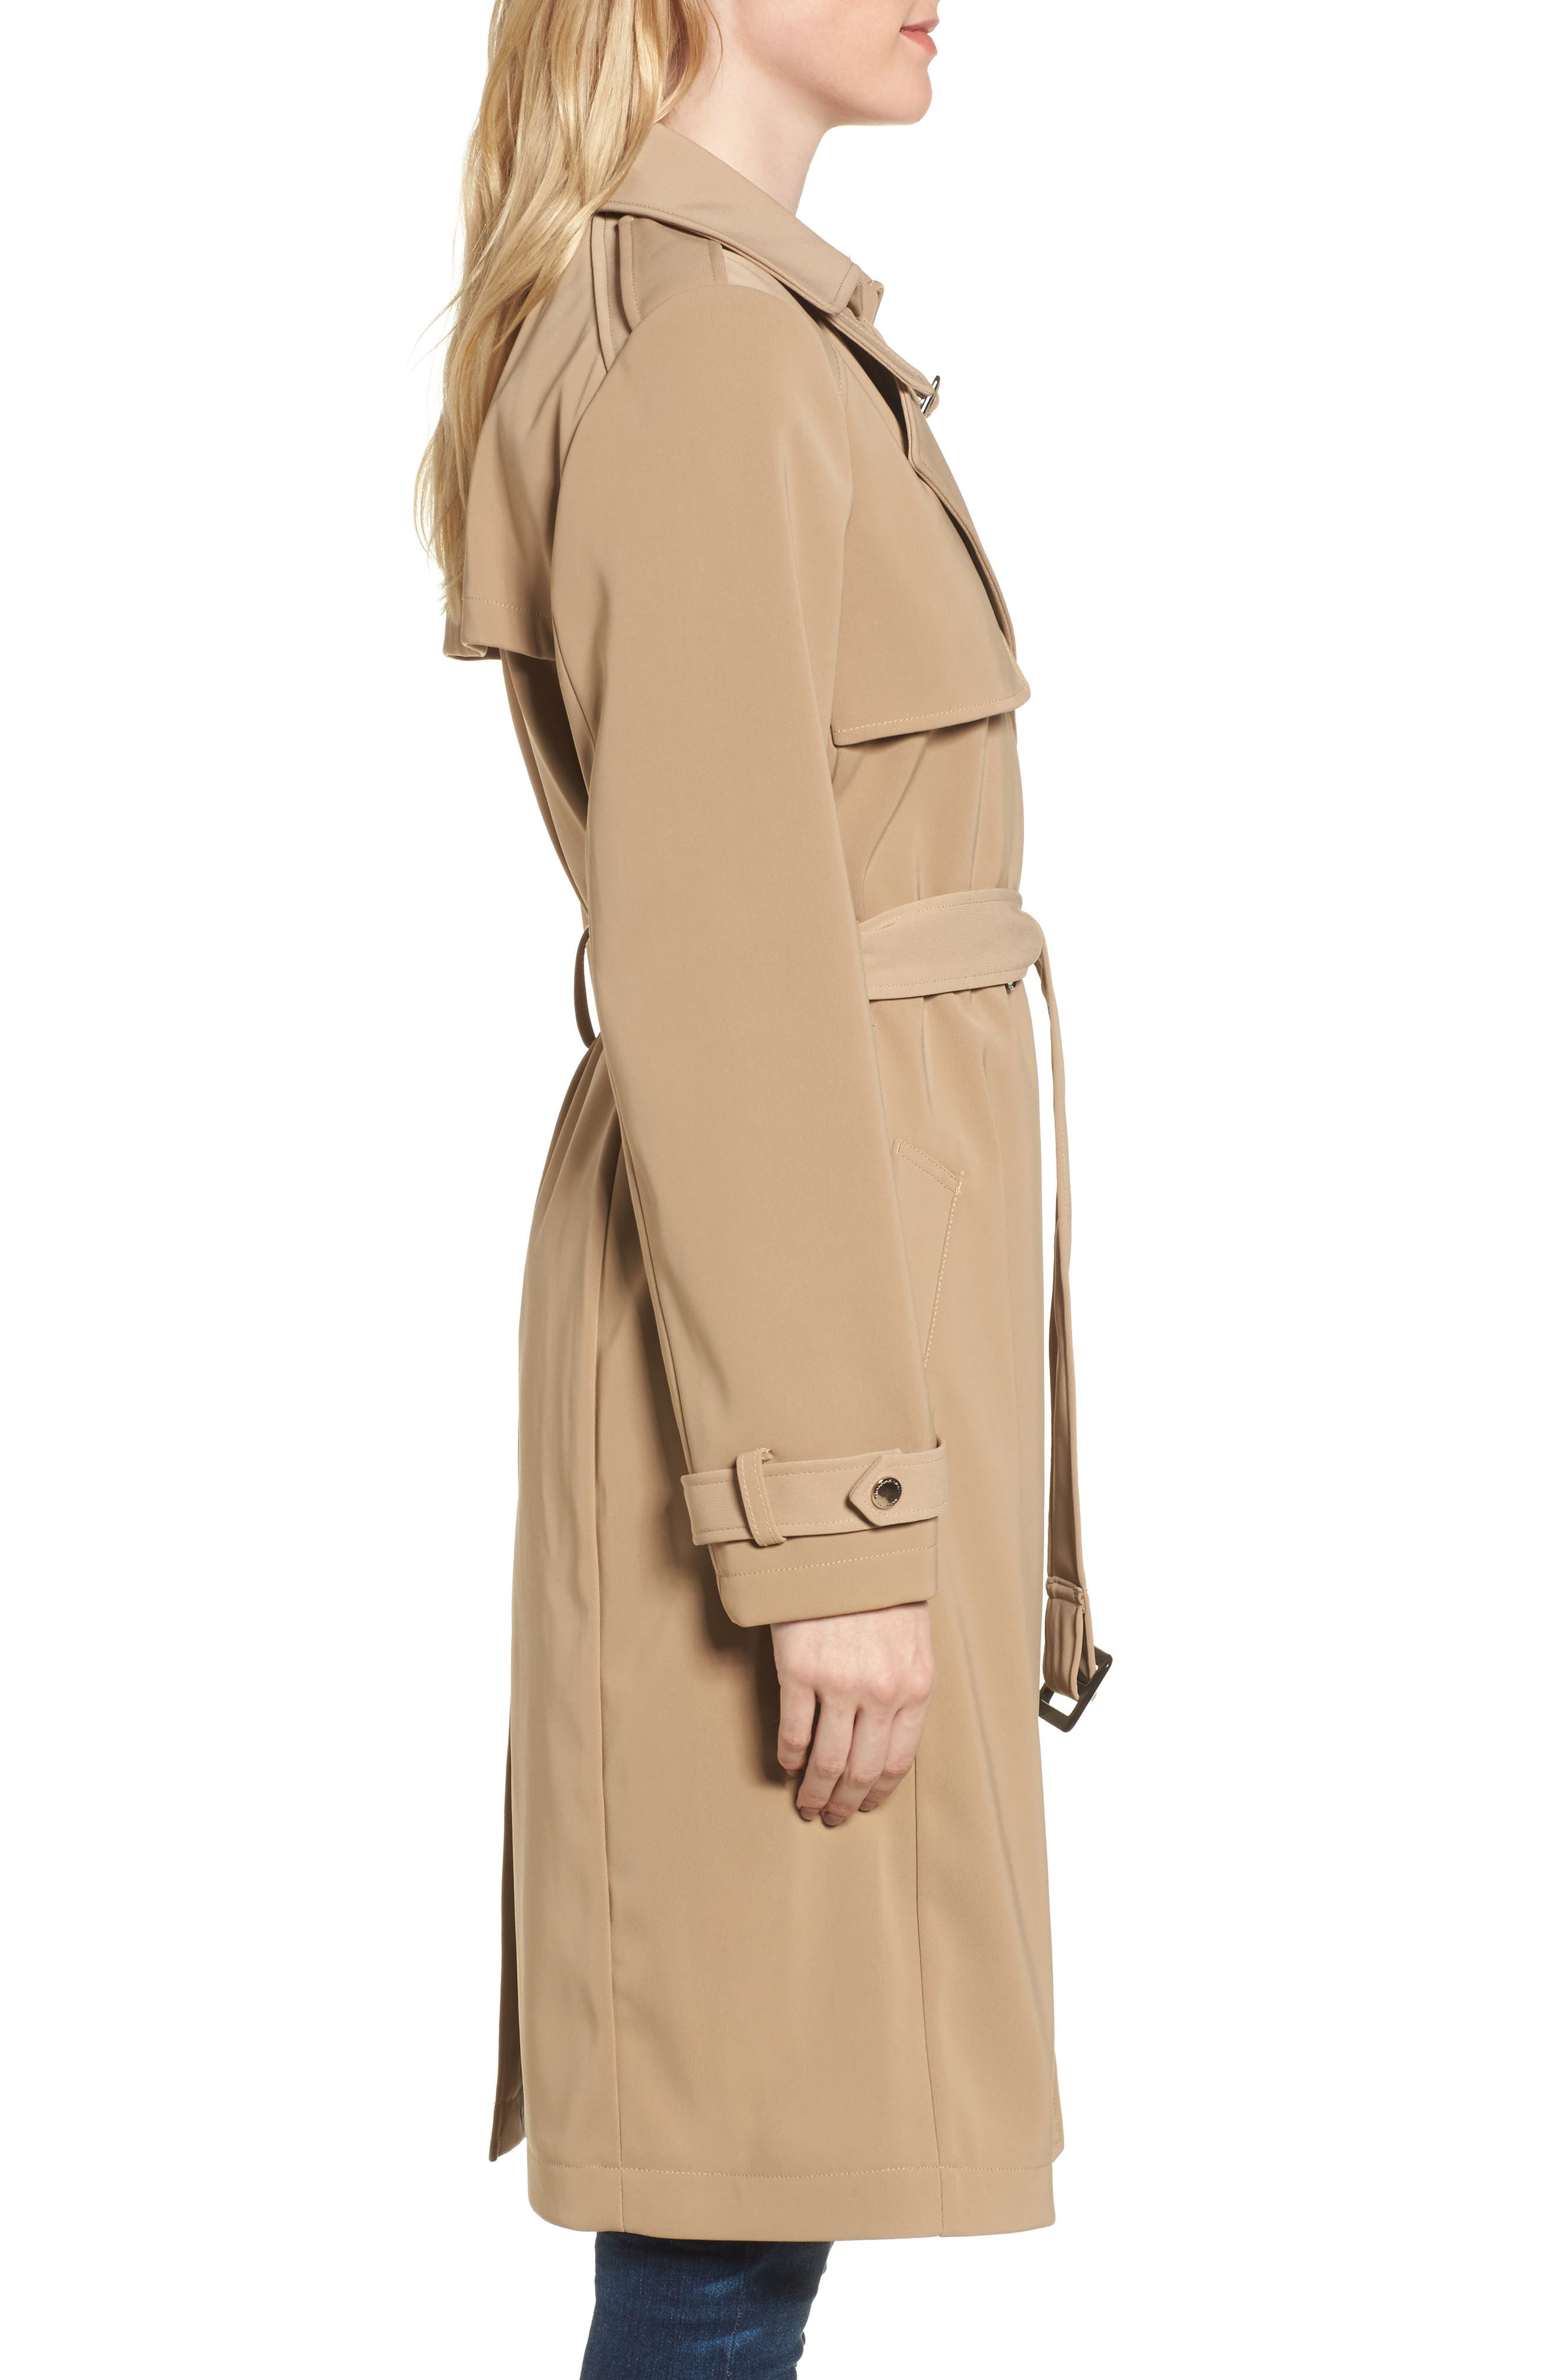 DKNY French Twill Water Resistant Trench Coat,                             Alternate thumbnail 6, color,